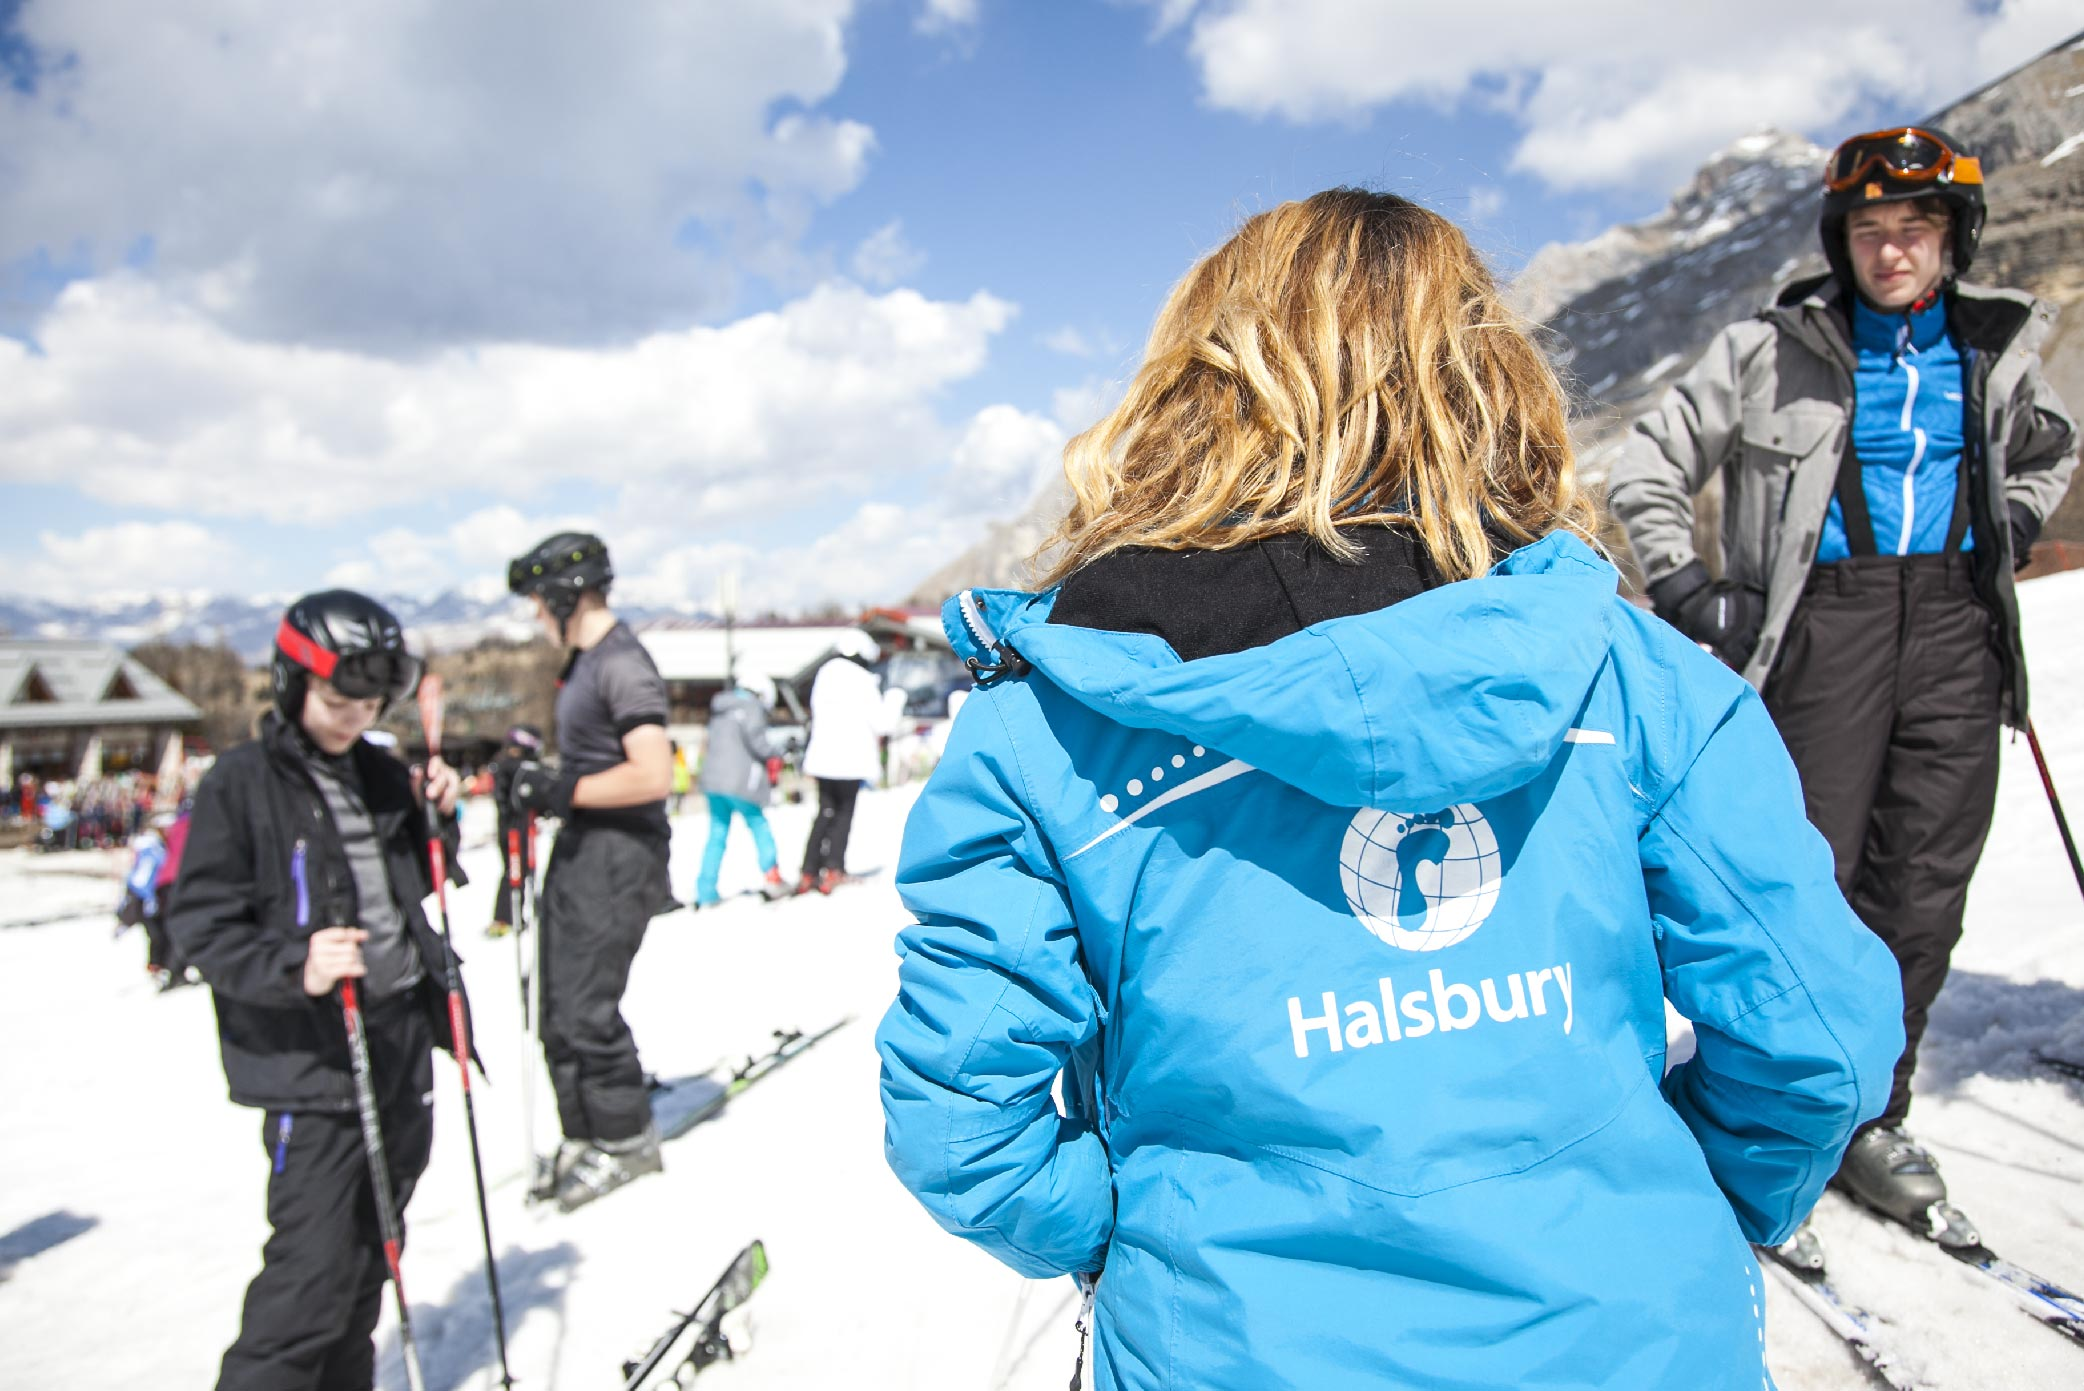 Who are Halsbury Ski-06